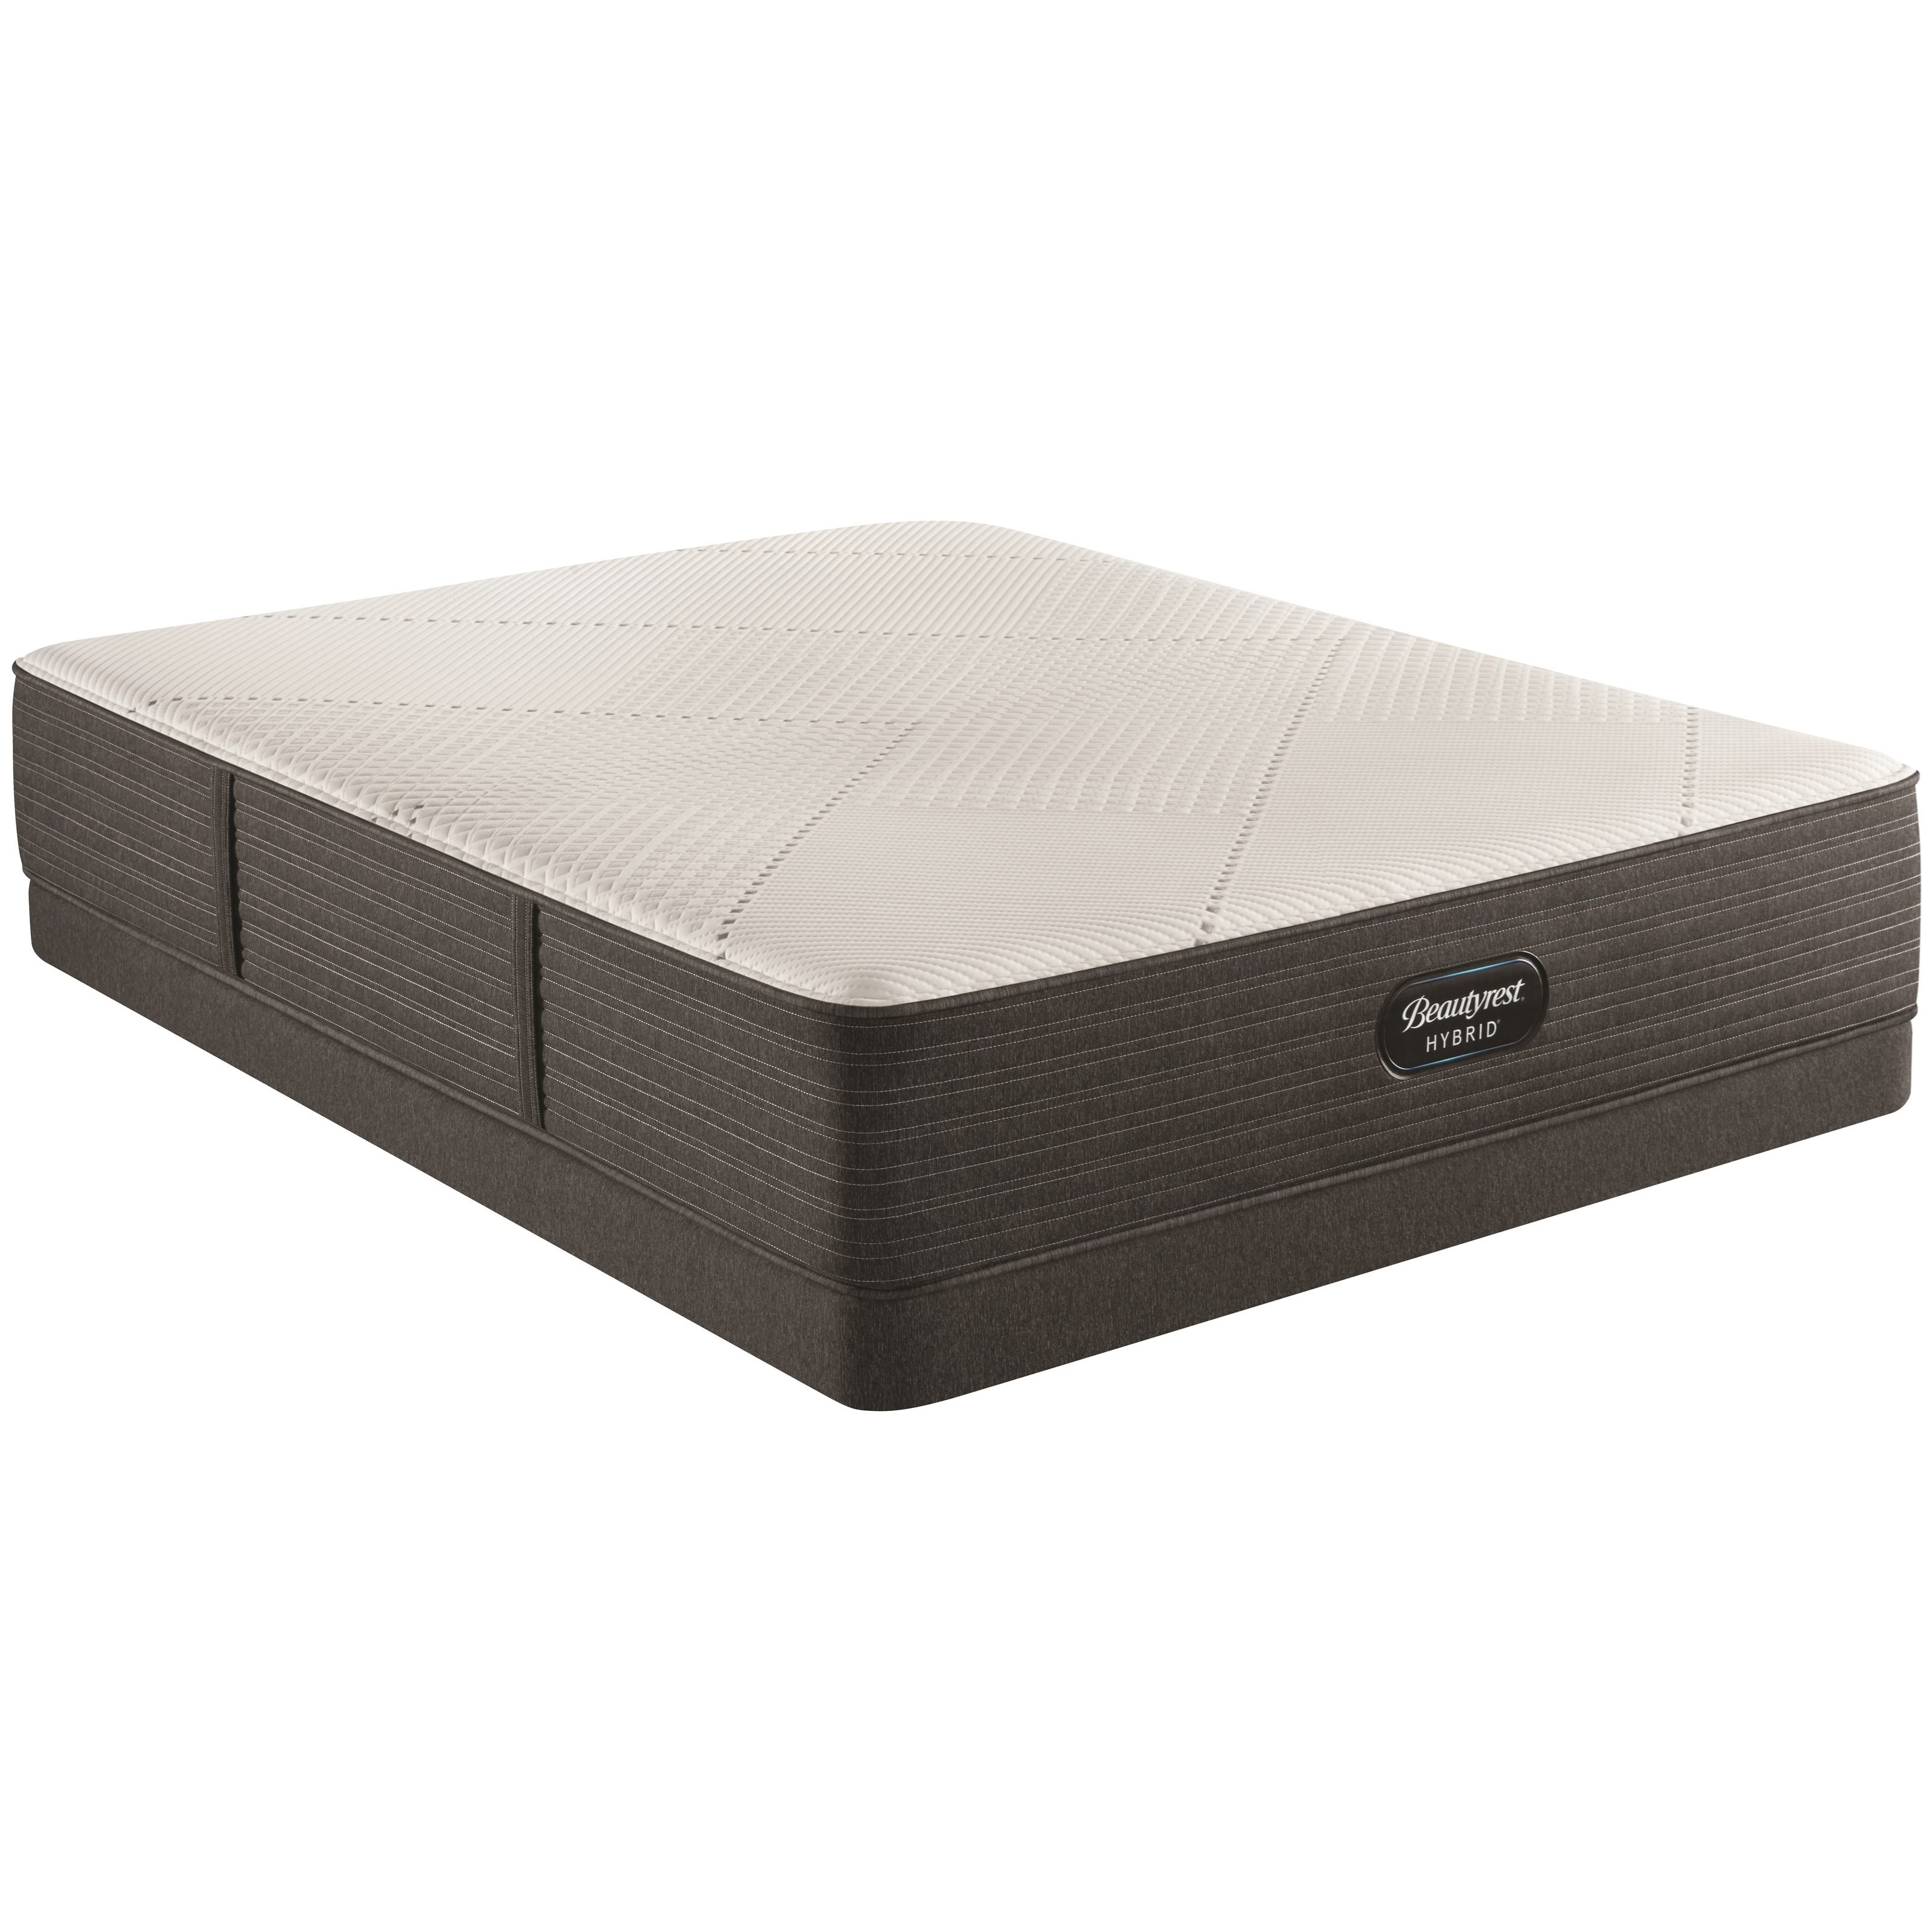 """BRX1000-IP Medium King 13 1/2"""" Hybrid Low Profile Set by Beautyrest at Rotmans"""